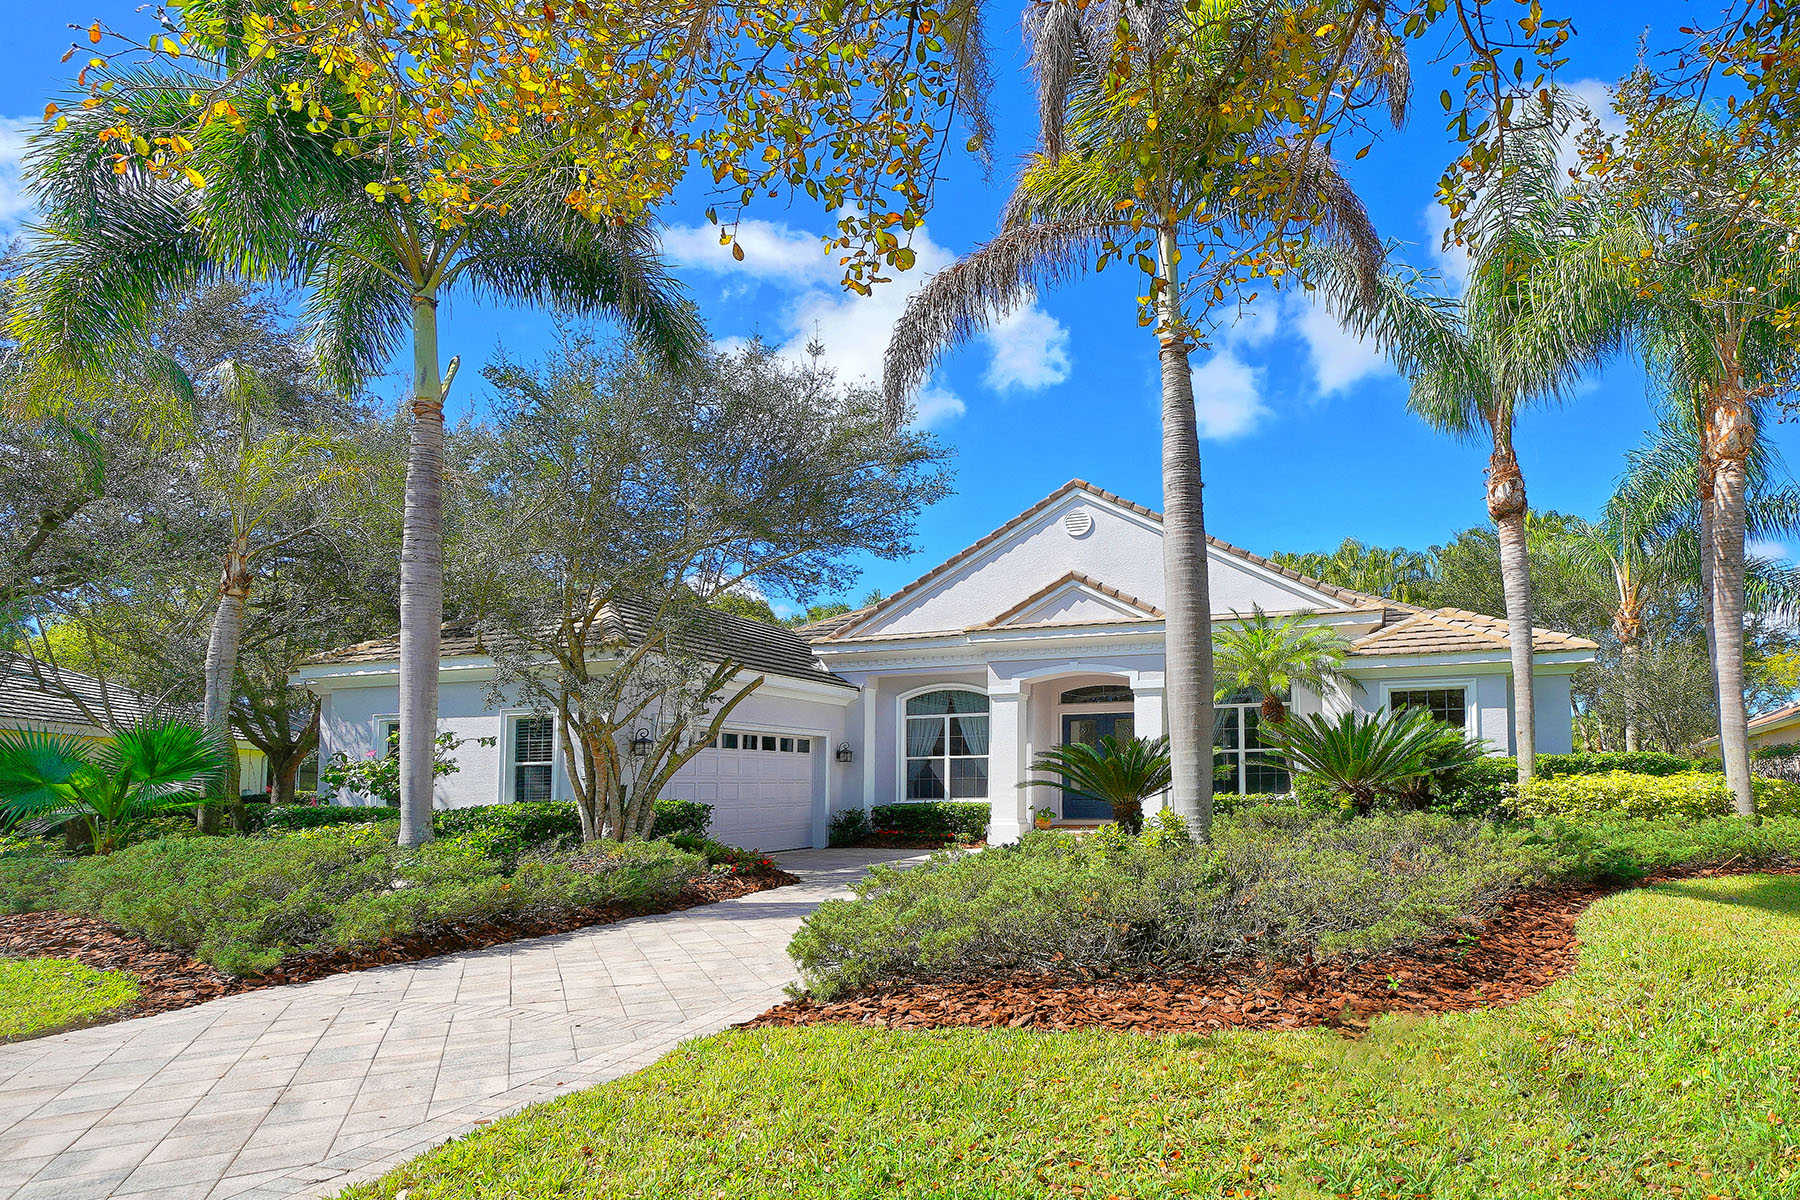 Single Family Homes for Active at UNIVERSITY PARK 7115 Chatsworth Ct University Park, Florida 34201 United States